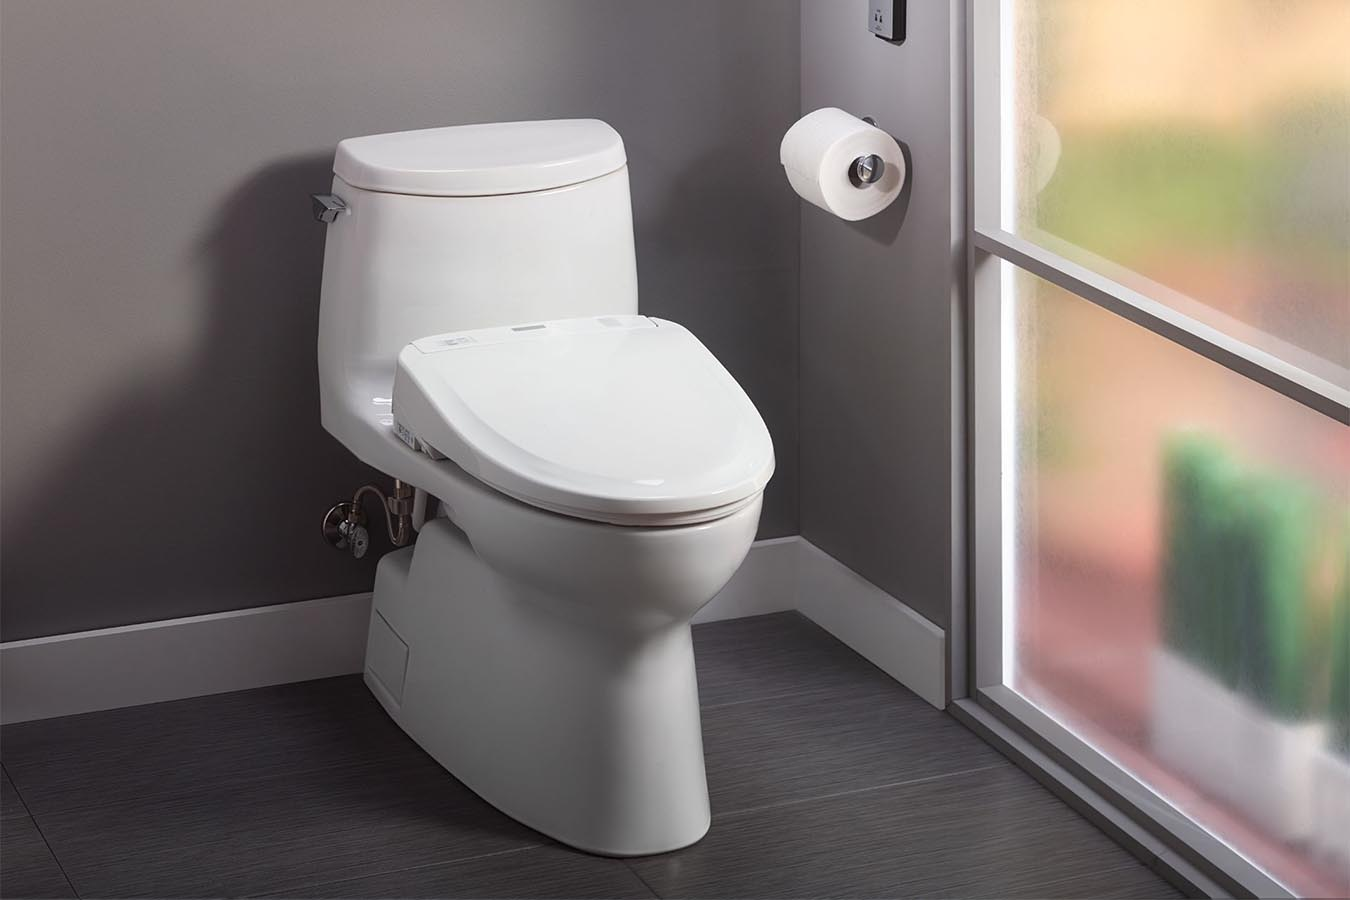 Where Are Toto Toilets Made?